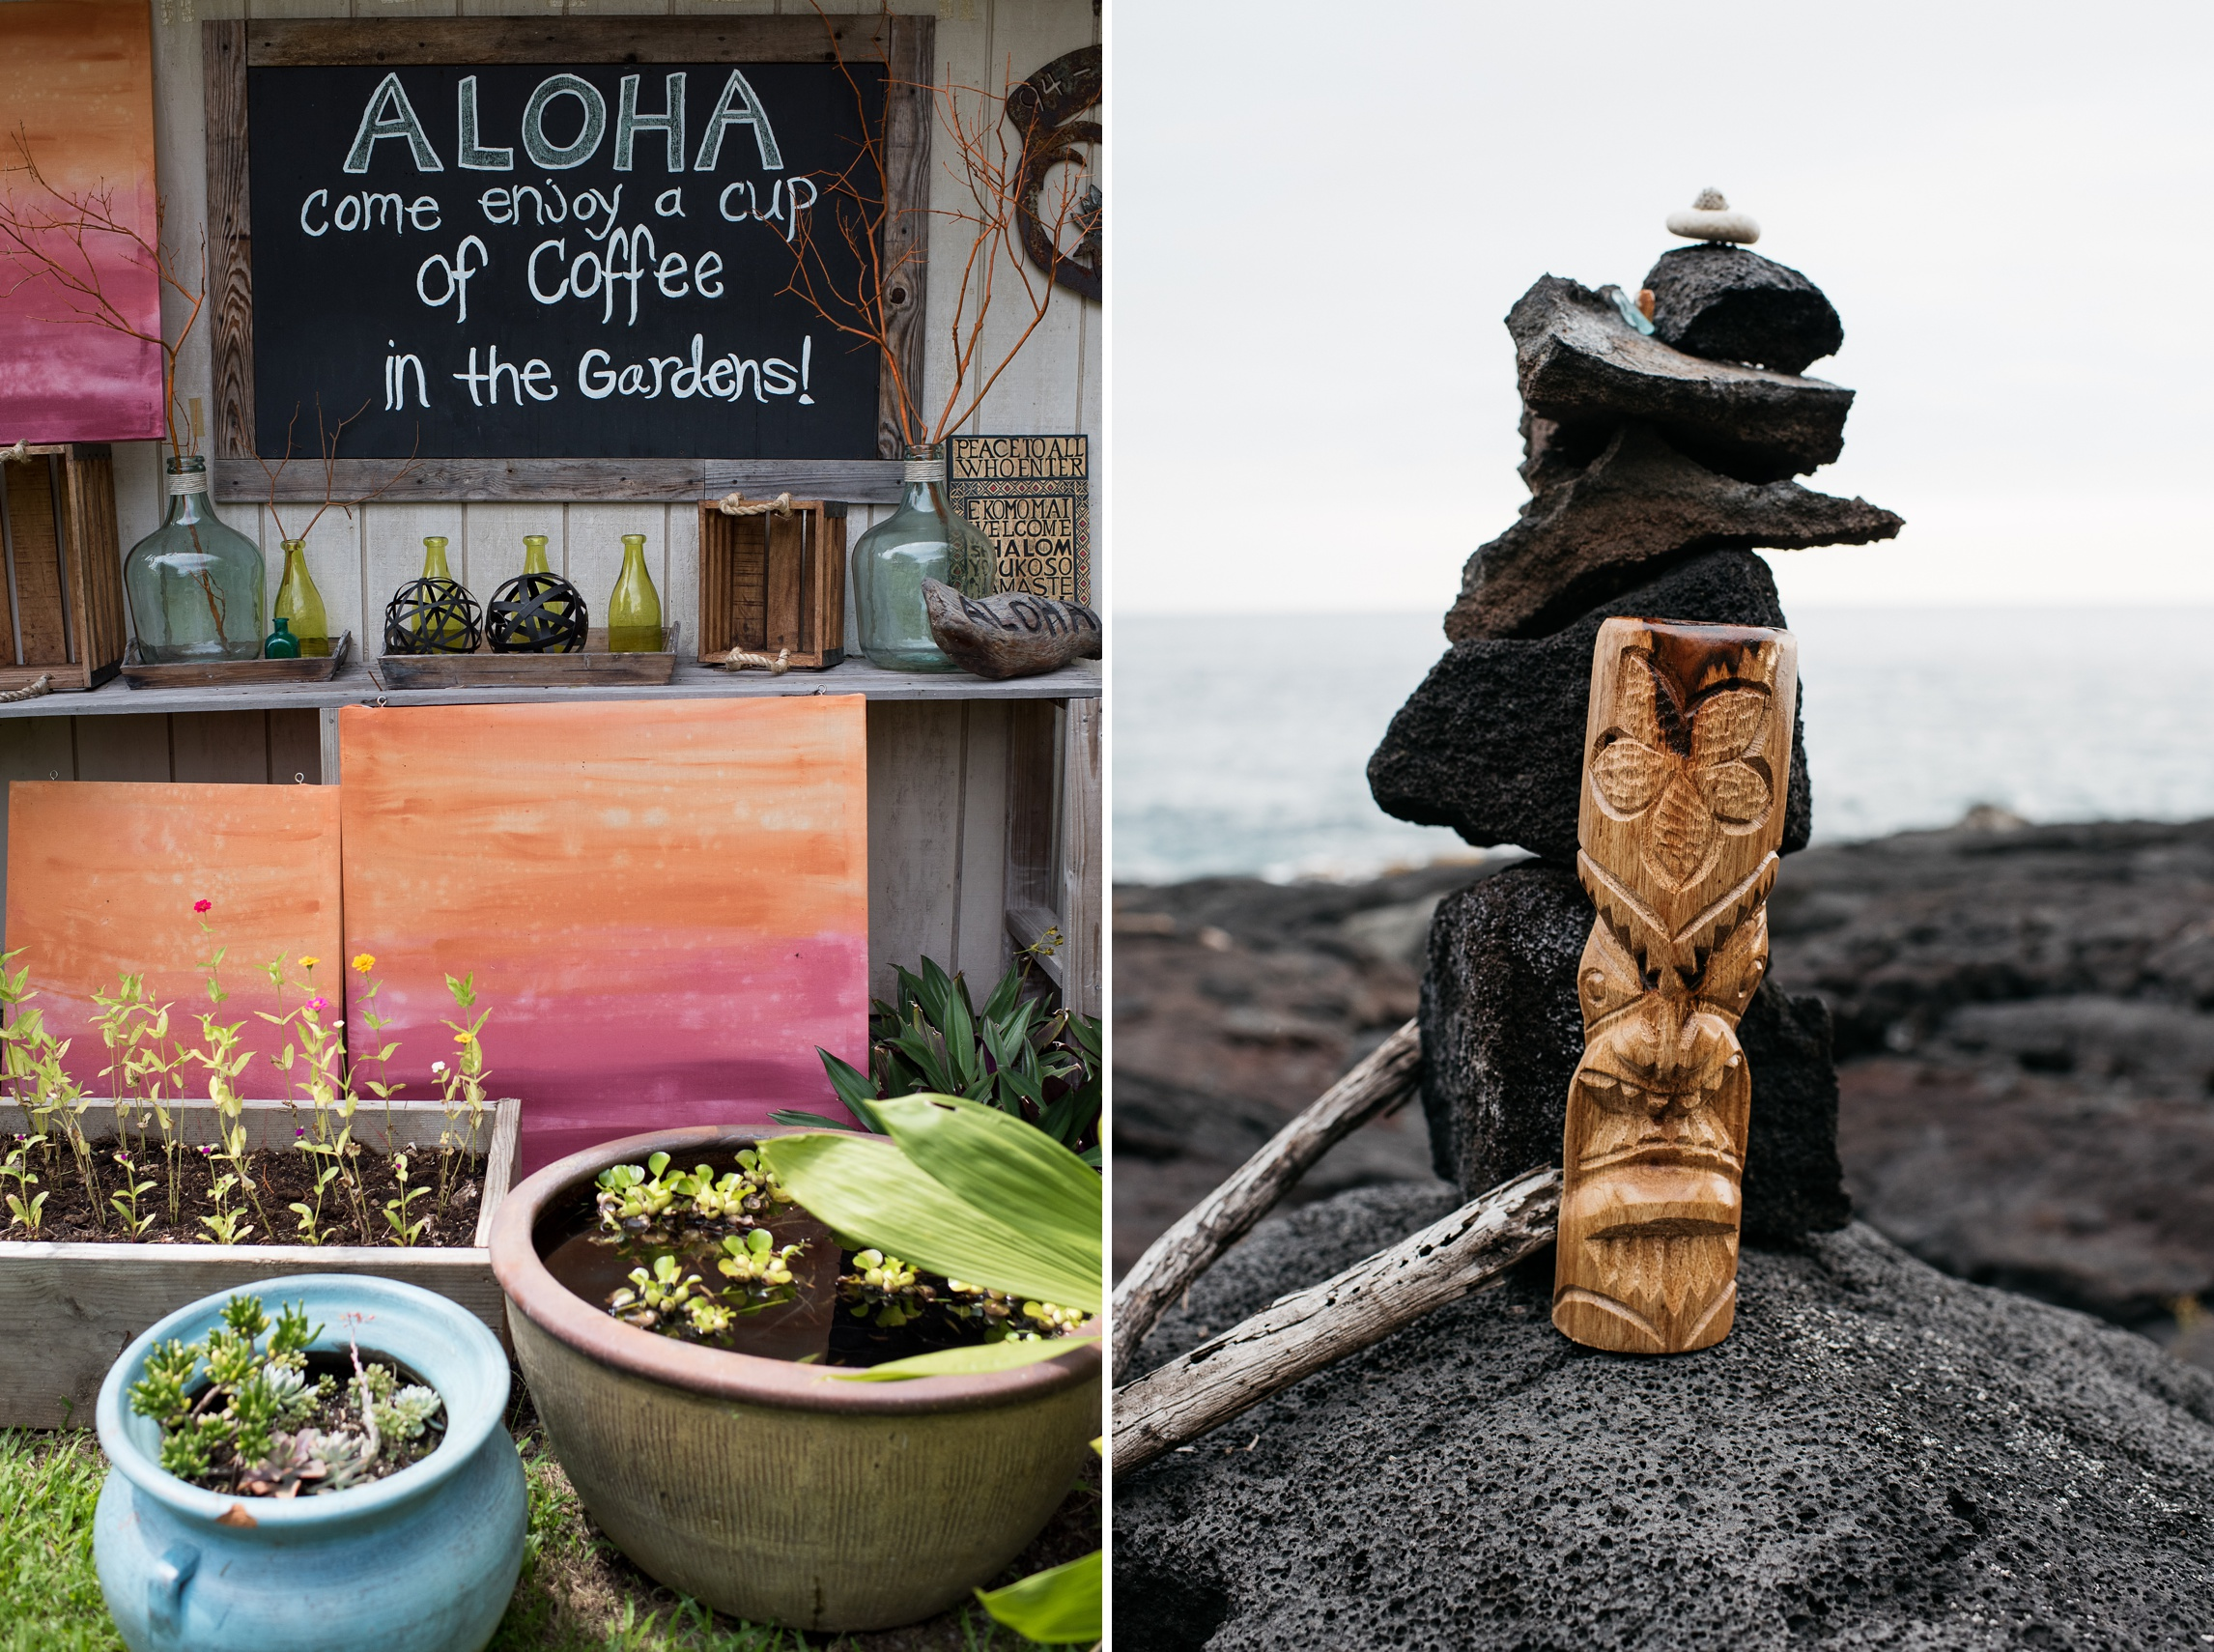 A sign to enjoy coffee in the gardens and a tiki carving rests near the ocean in Naalehu, Hawaii. Photography by Sonja Salzburg of Sonja K Photography.